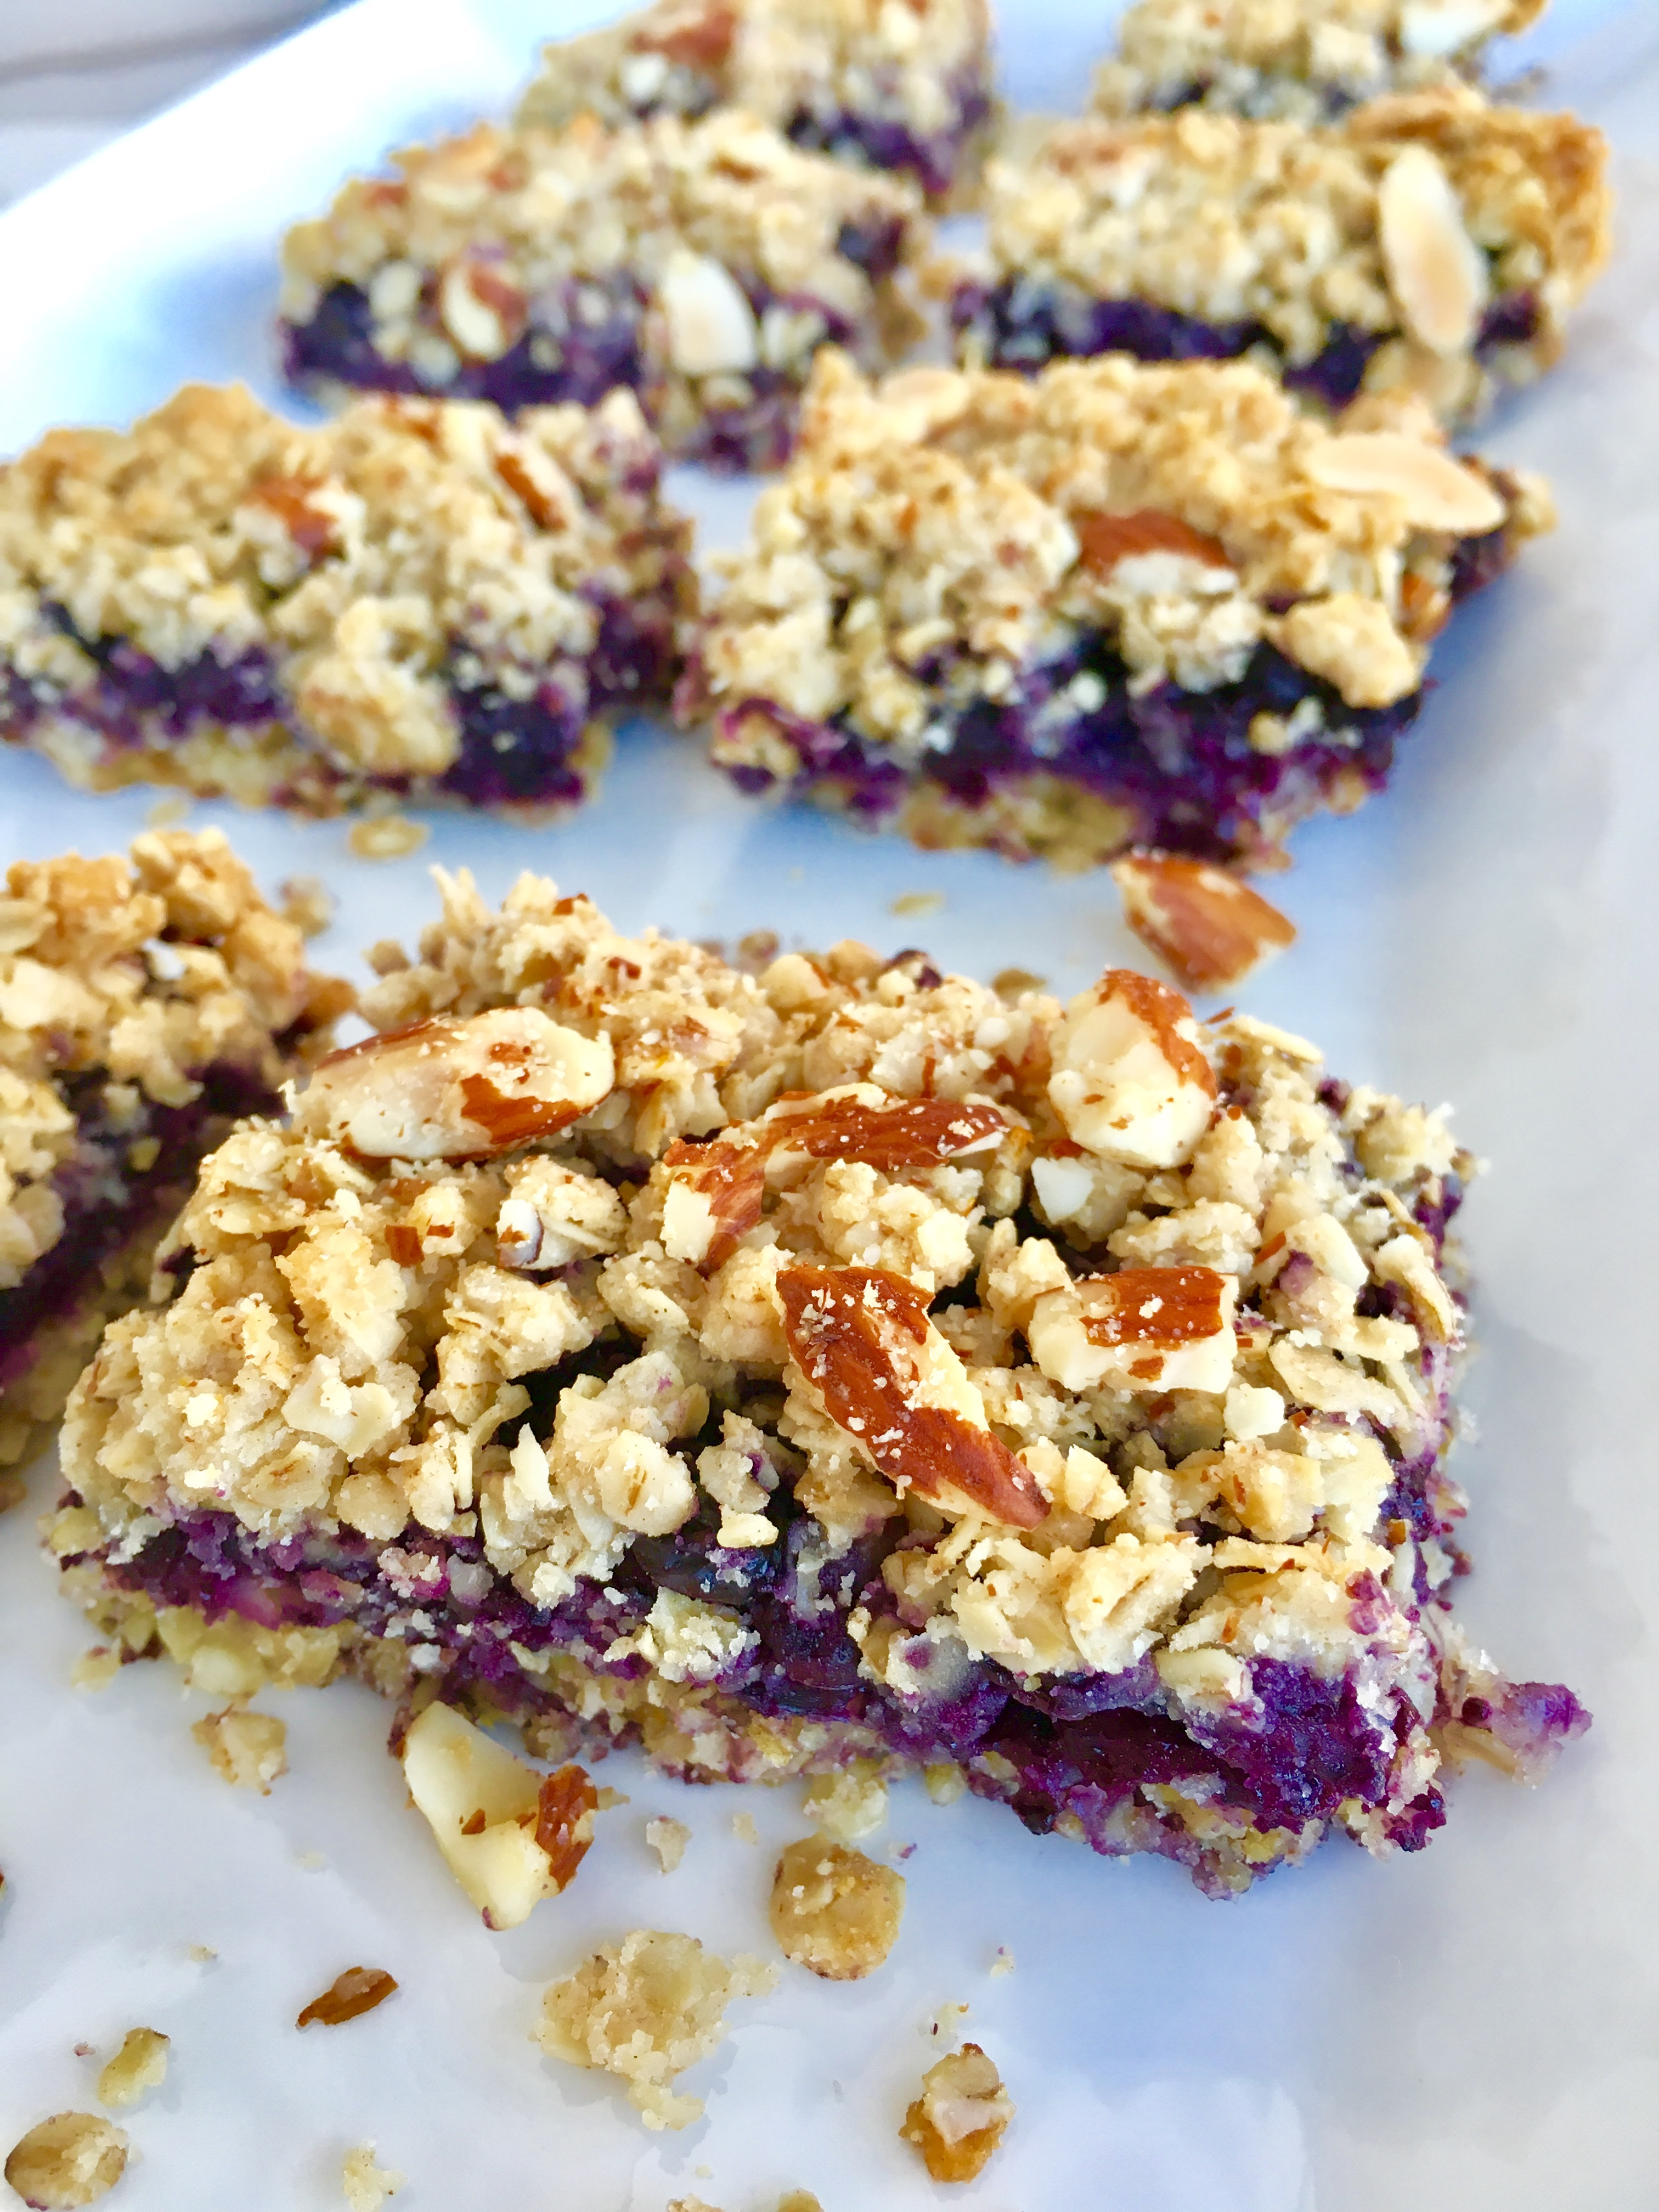 Healthy Wild Blueberry Crumble Bars